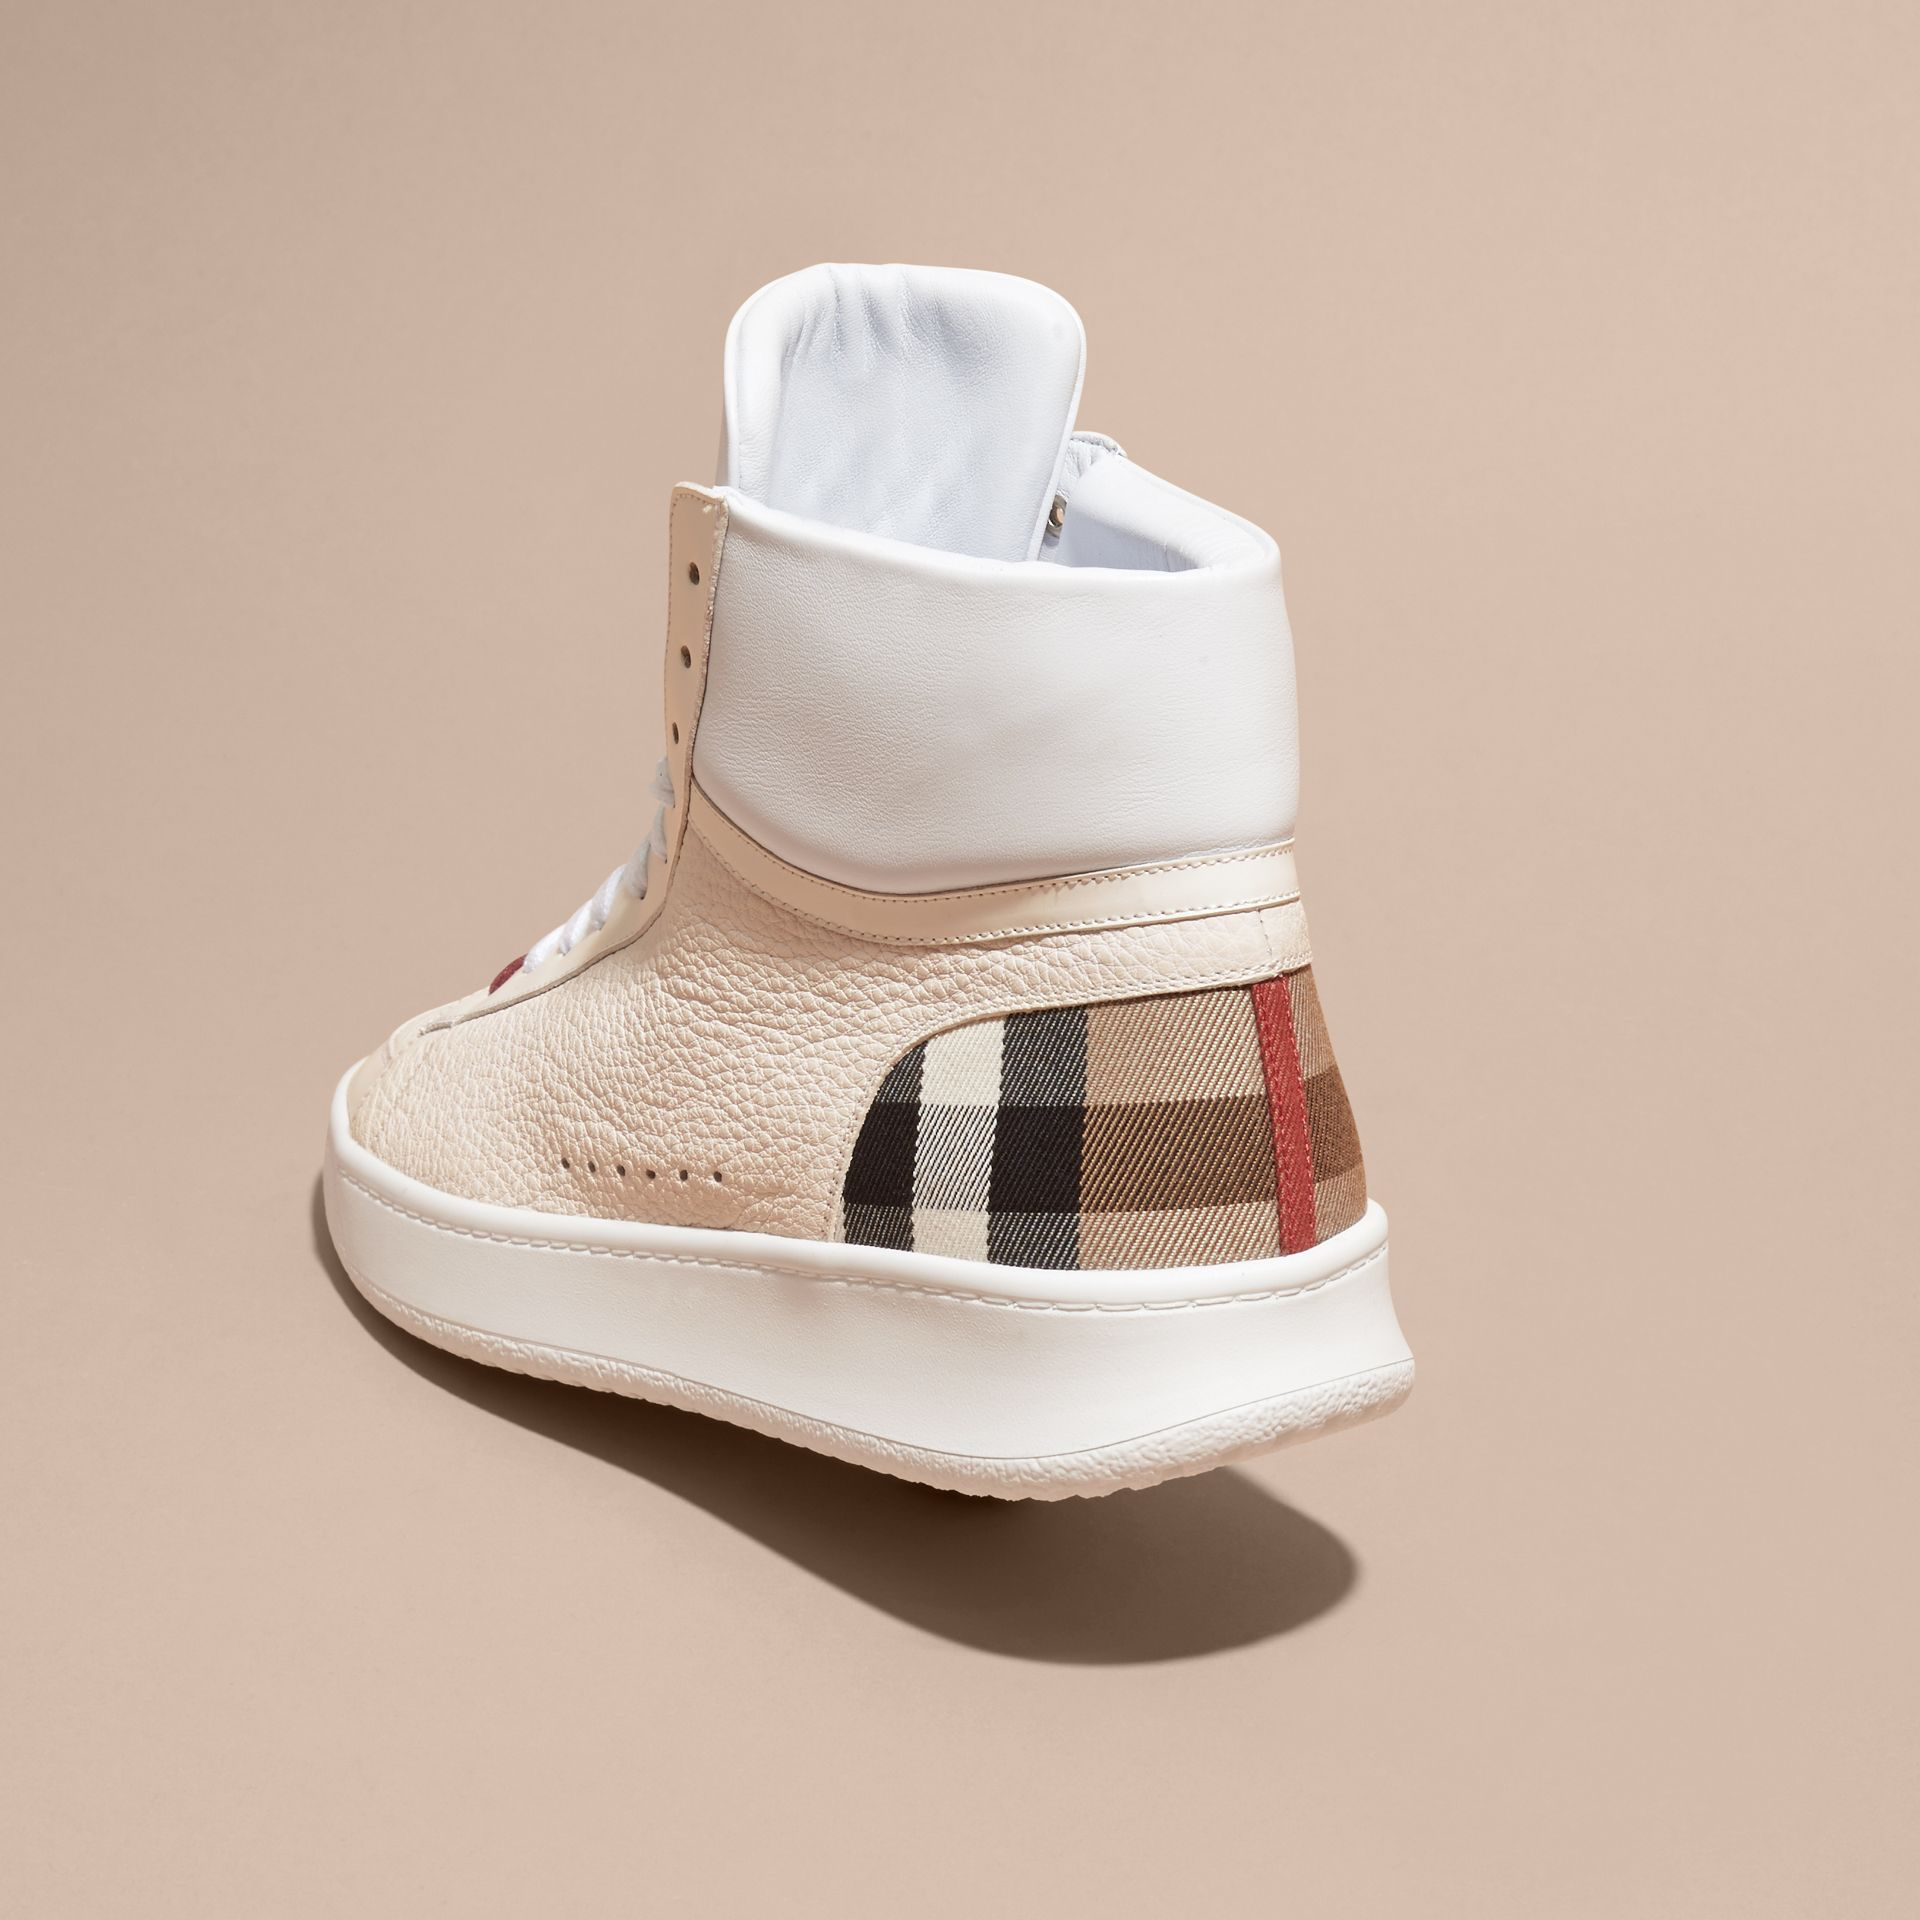 House check/optic white Check Detail Leather High-top Trainers House Check/optic White - gallery image 4